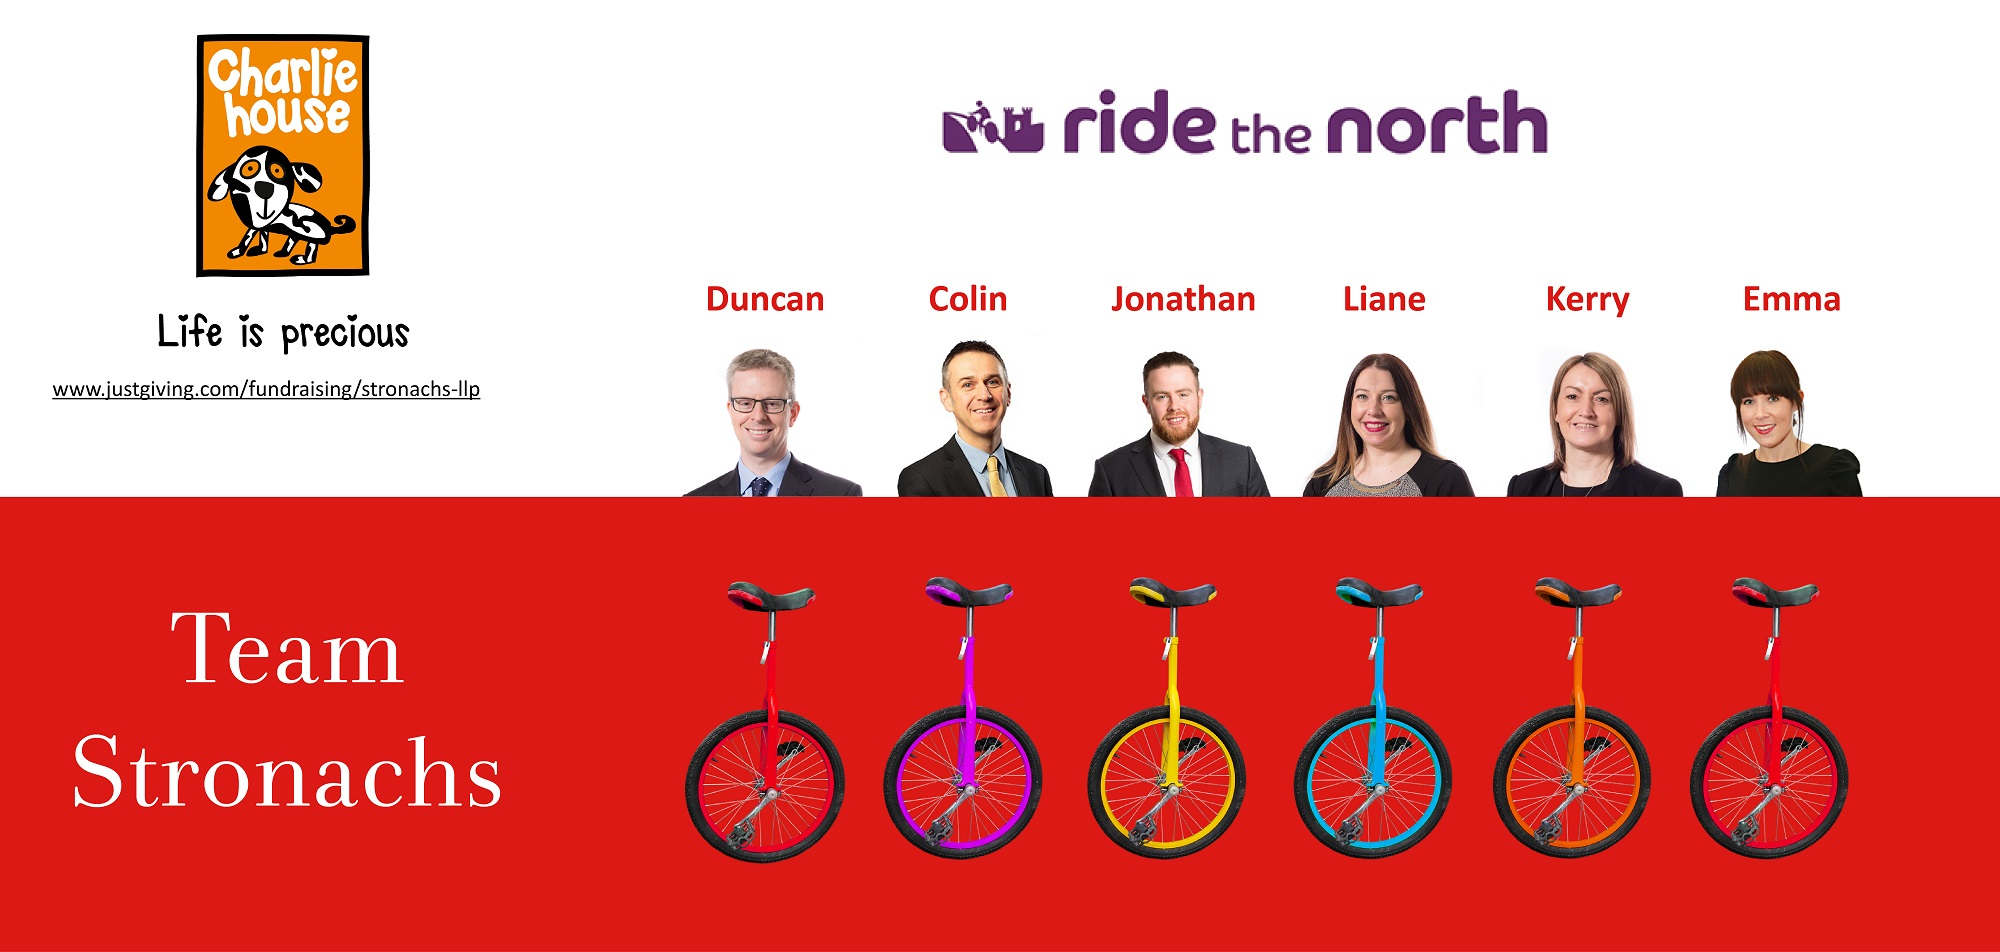 On your bike - it's August, that means Ride the North